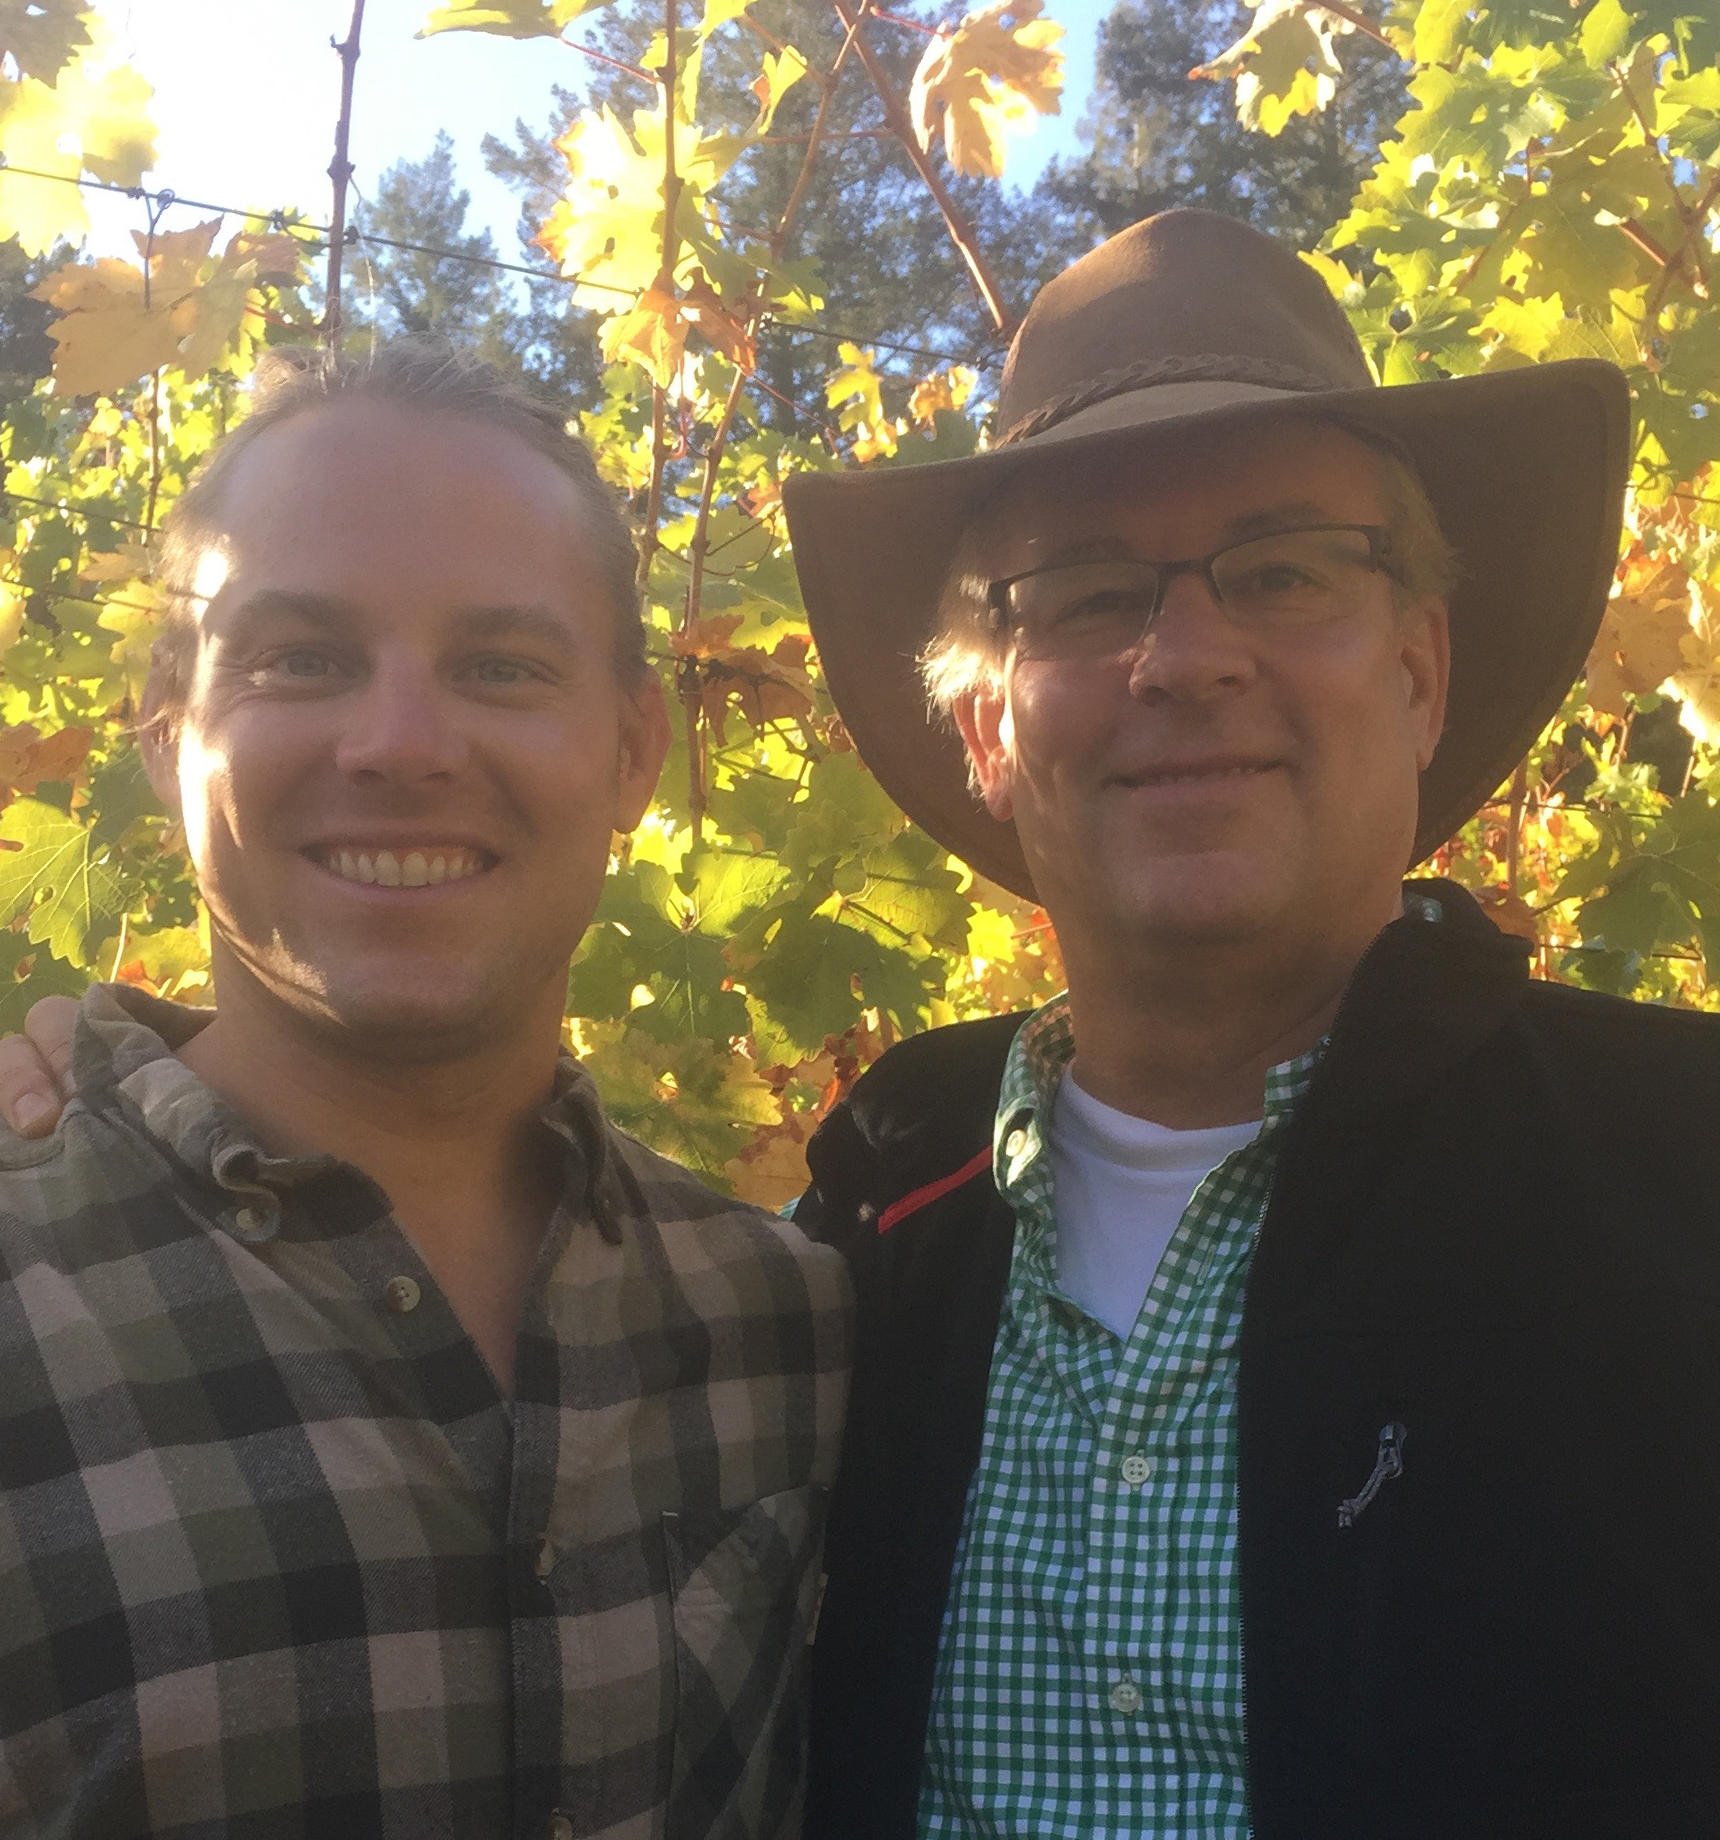 The Wine RayZyn Company founders, Andrew and Chris Cates